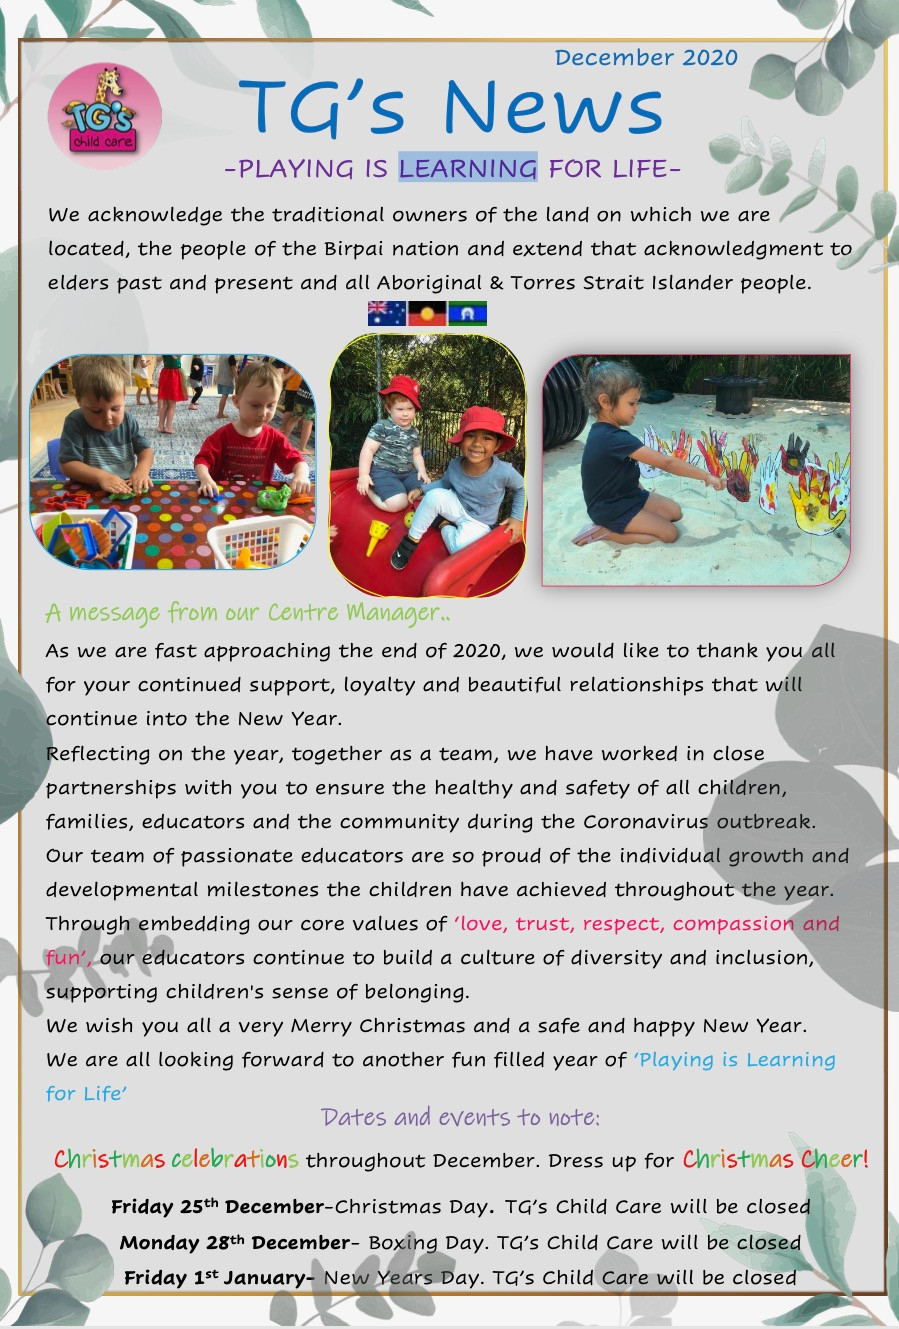 TG´s Child Care High Street December 2020 updates playing is learning for life through Christmas, summer and graduation